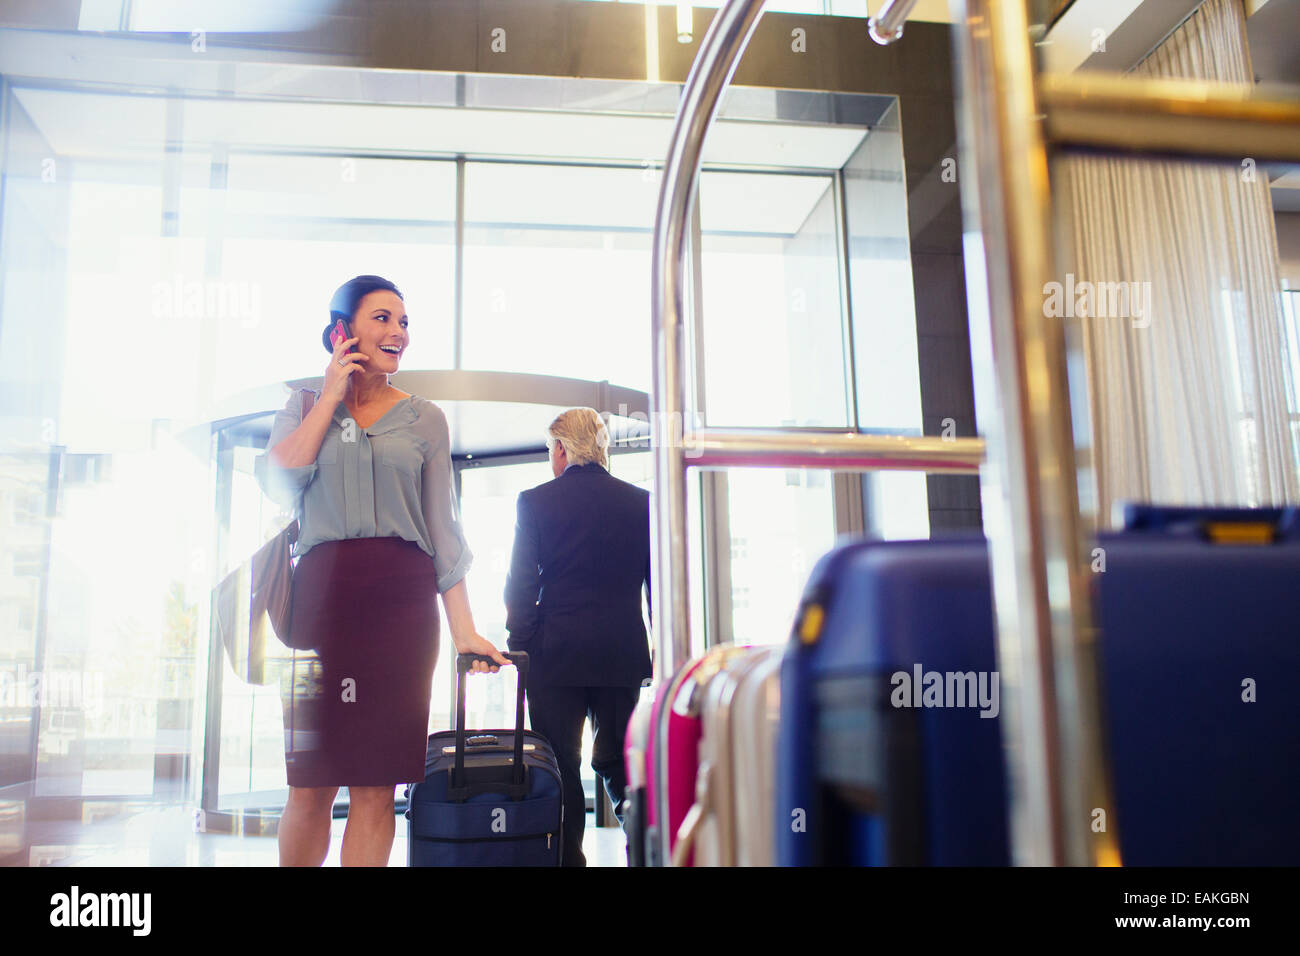 Smiling woman talking on phone in hotel lobby, luggage cart in foreground - Stock Image